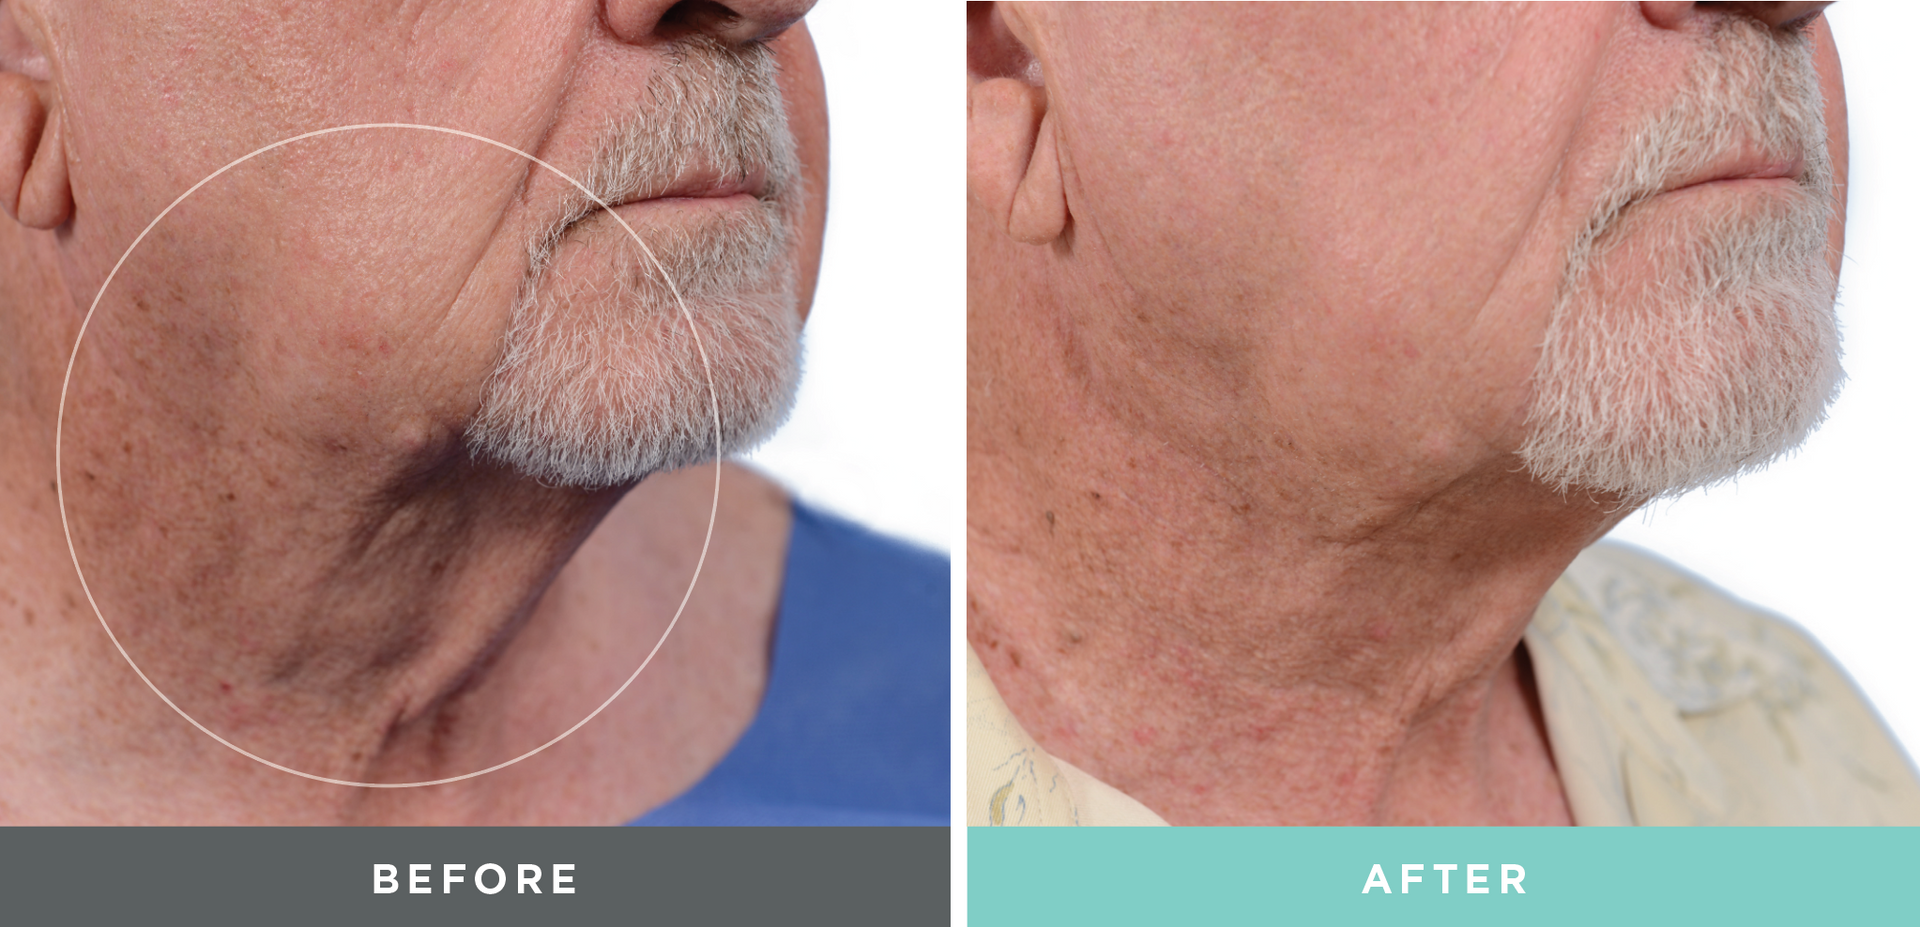 A before and after treatment done by Liftique